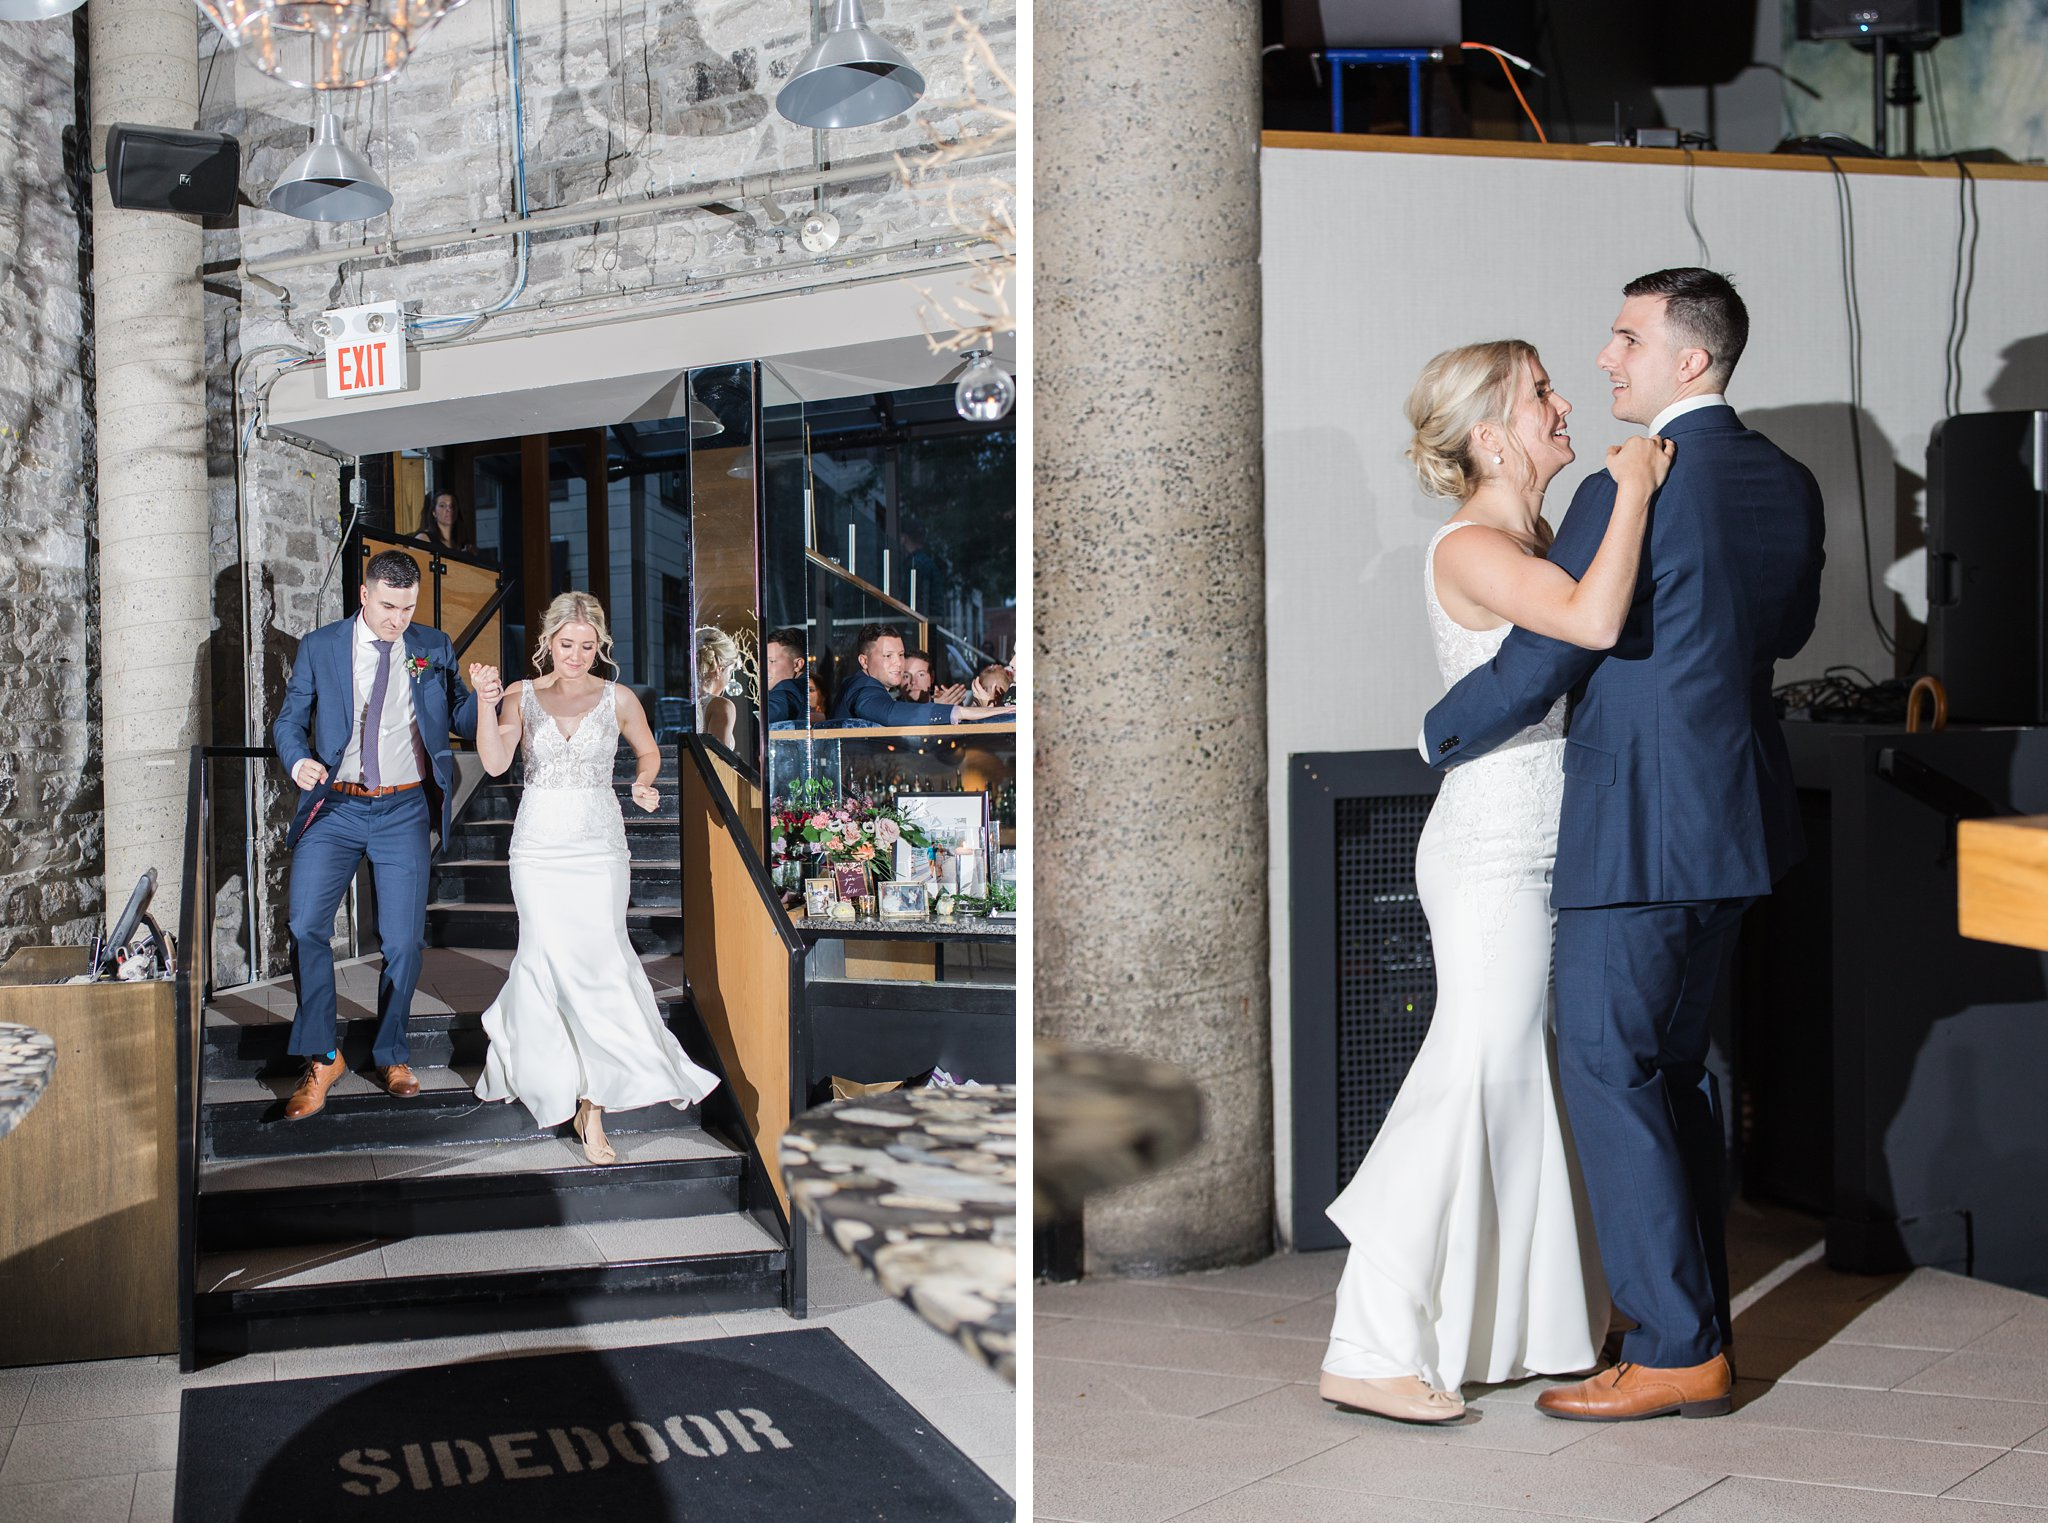 Grand entrance Ottawa restaurant wedding at Sidedoor Restaurant